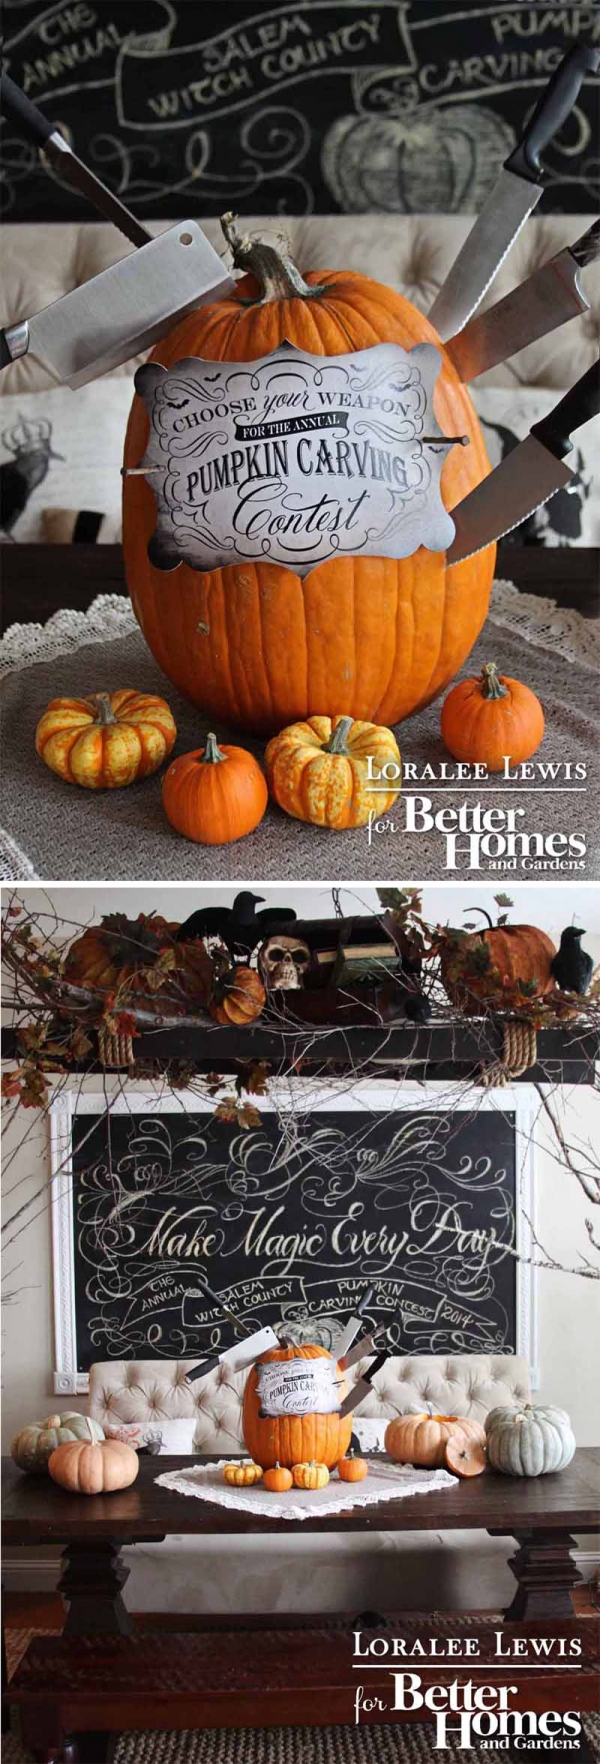 Bhg Halloween Magazine Loralee Lewis Feature Top 10